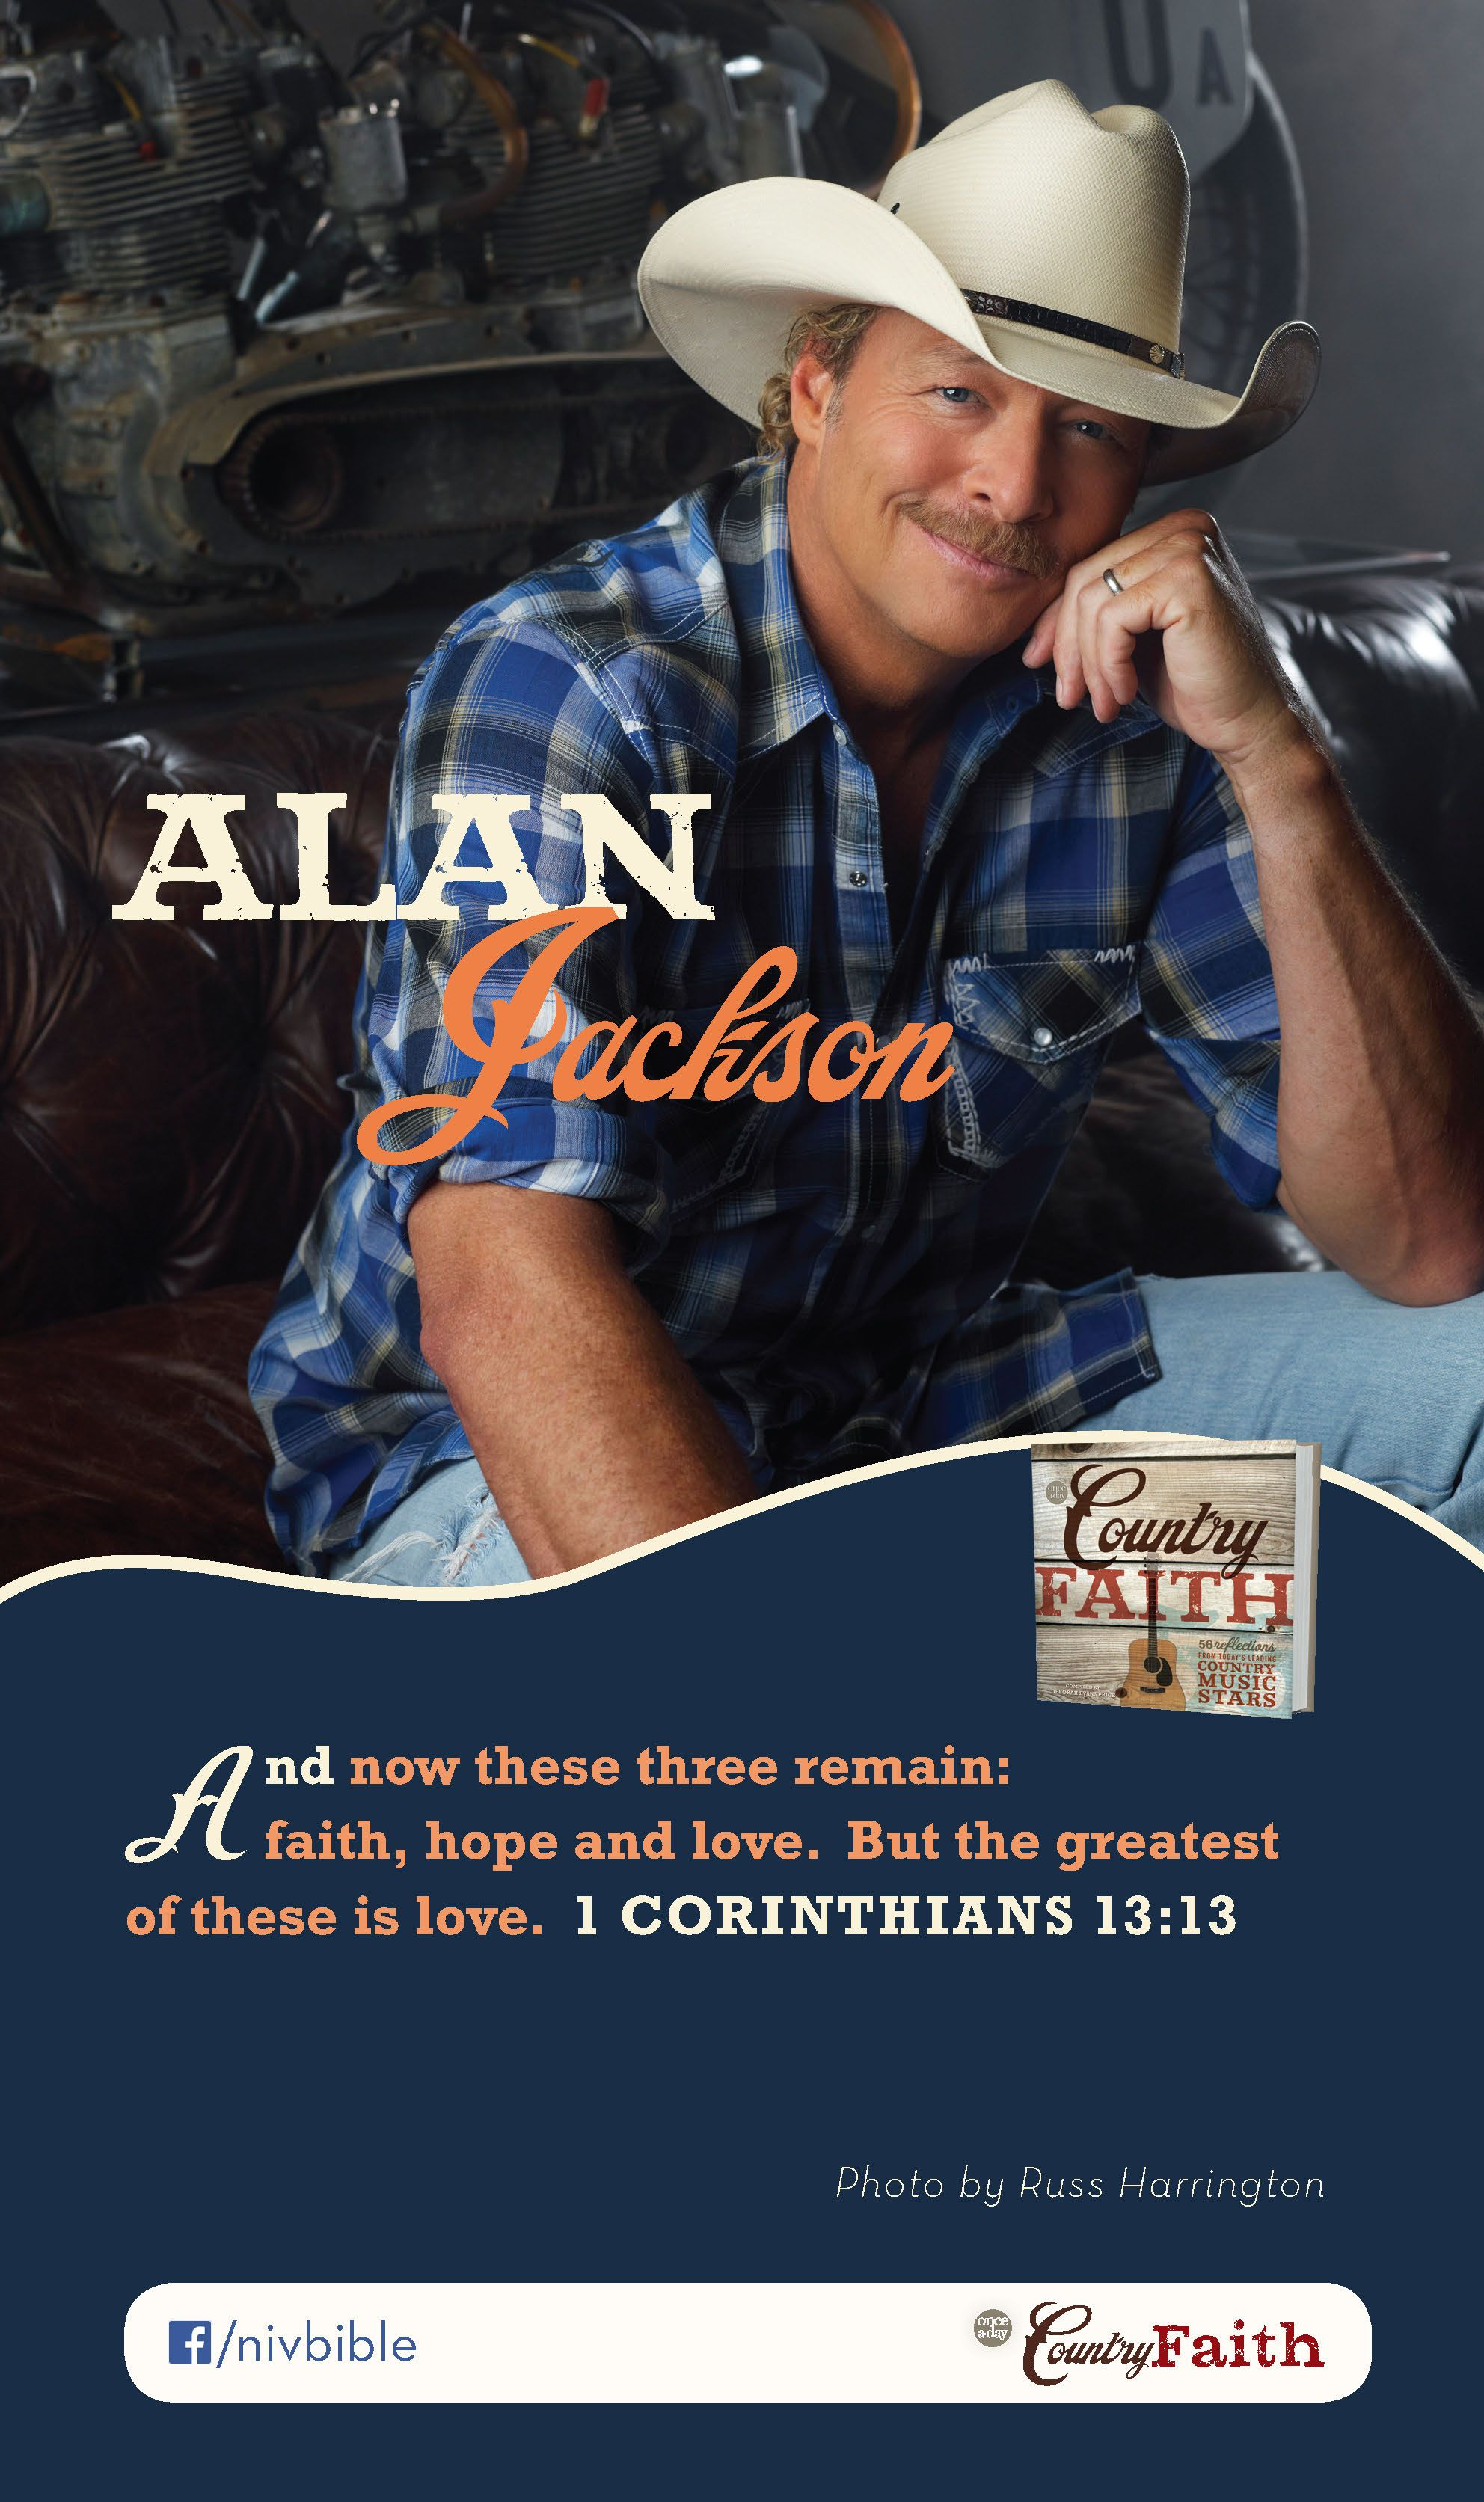 Alan Jackson Talks About His Favorite Bible Verse And Its